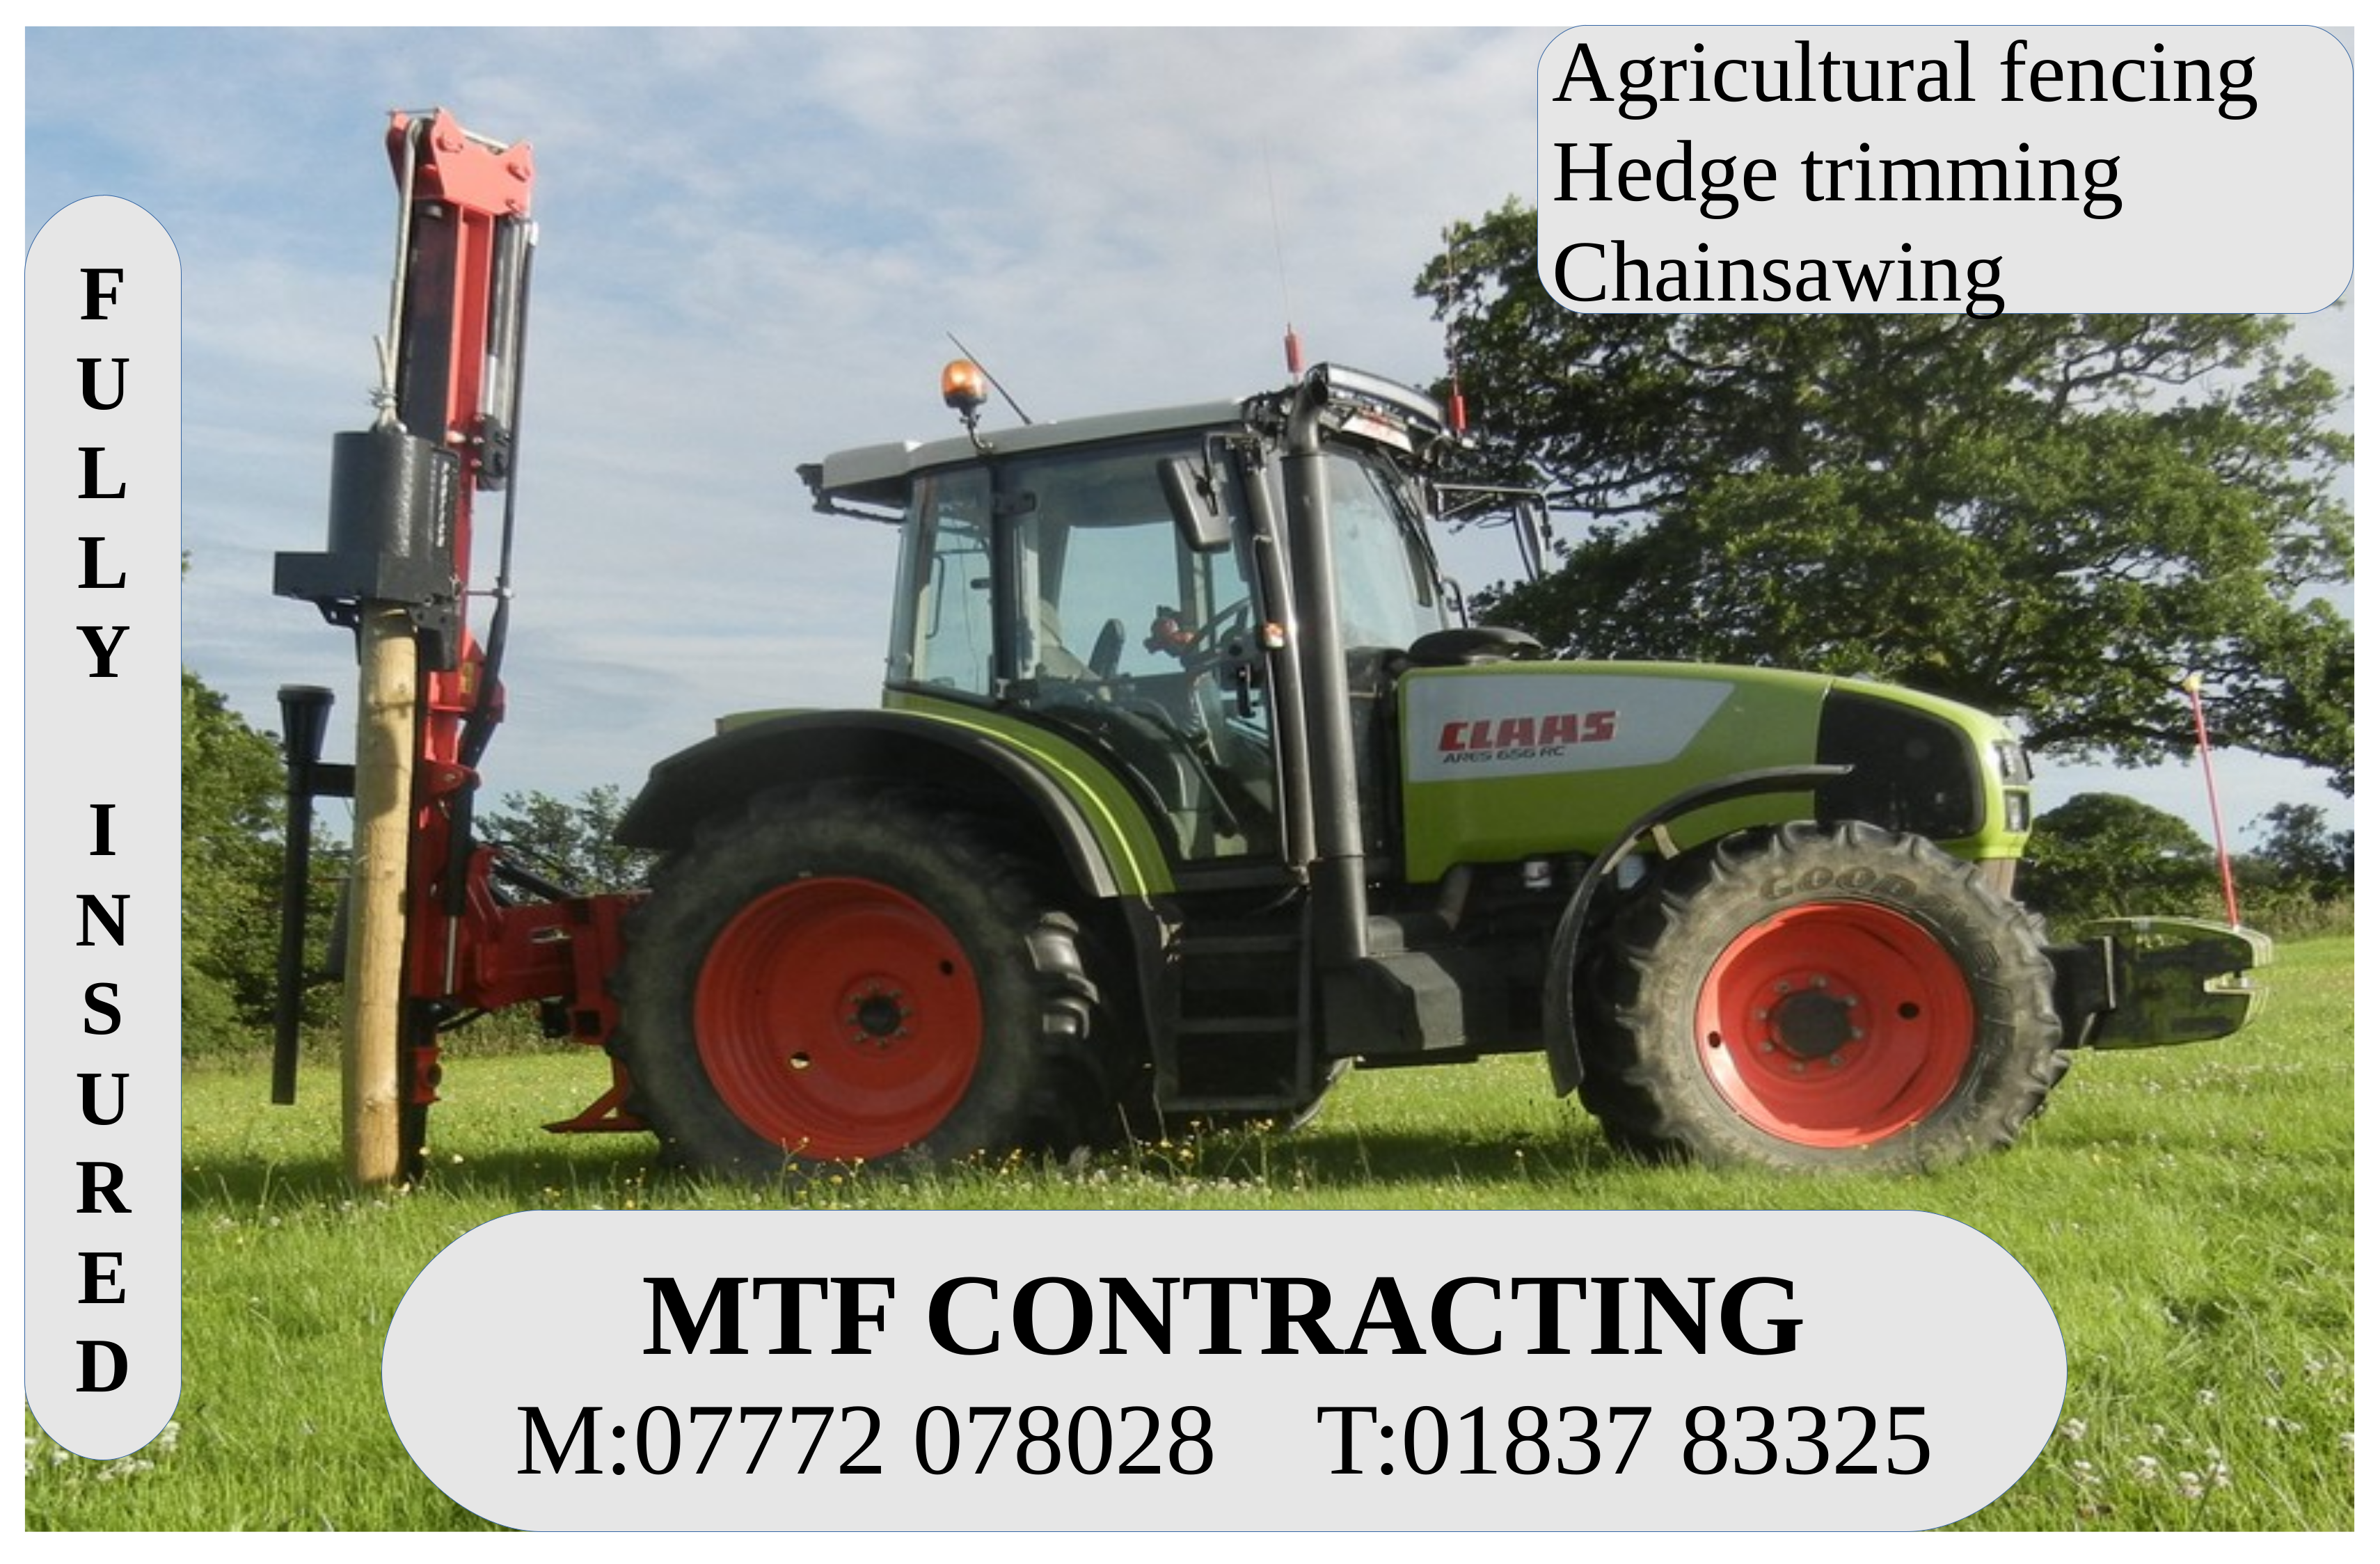 MTF Contracting